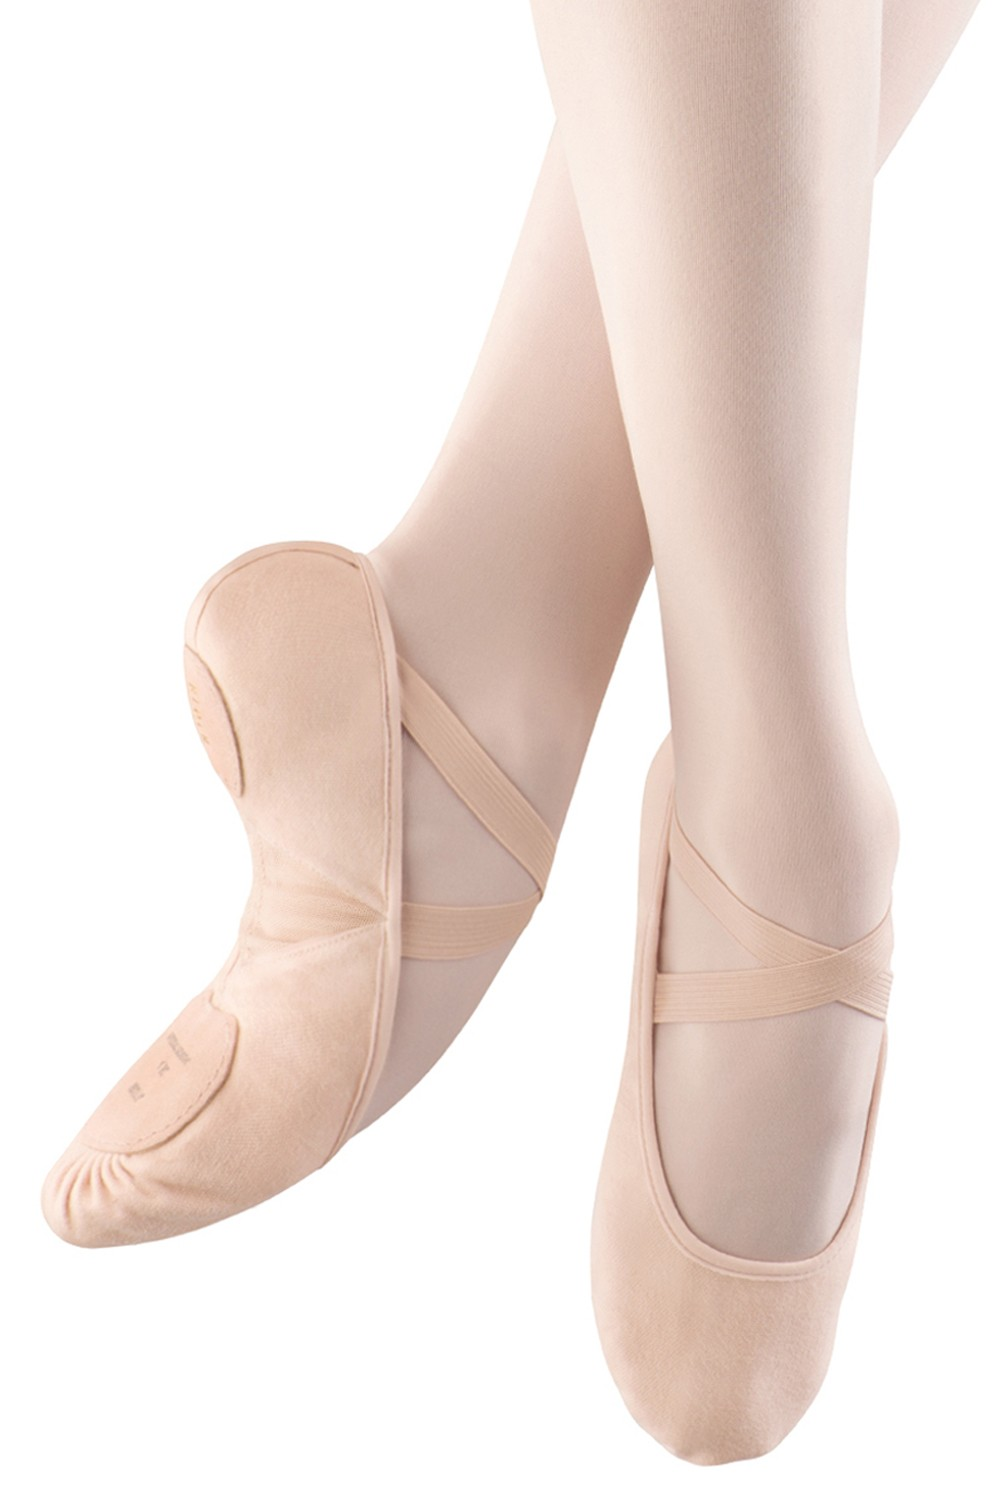 Pro Arch Women's Ballet Shoes